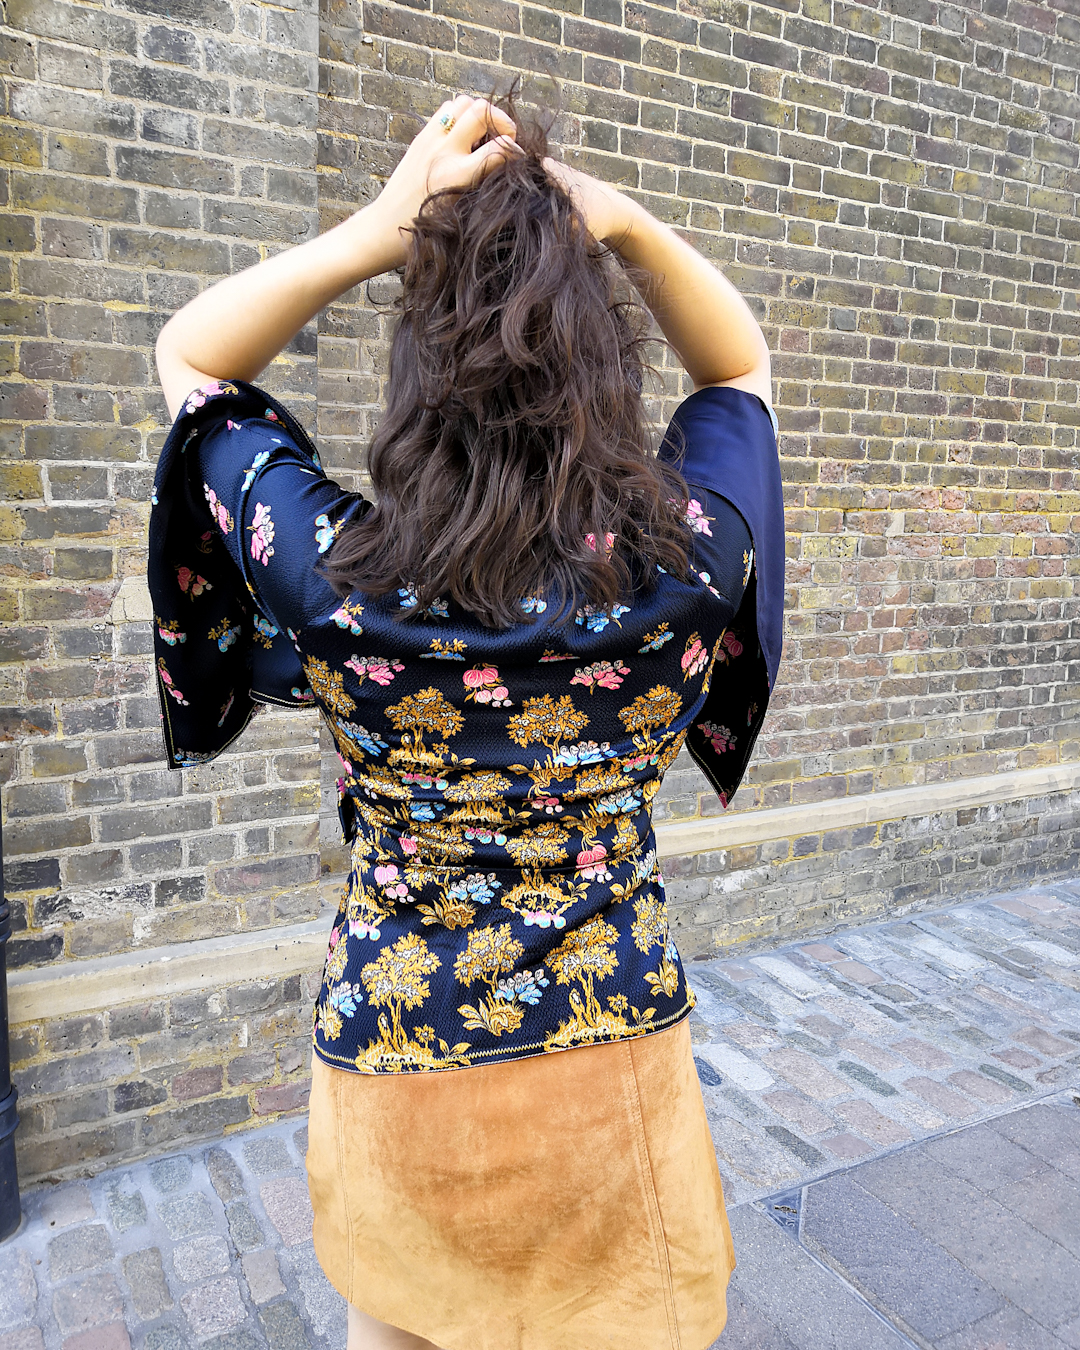 Katie wears a wrap top with a navy, pink and goldenrod floral pattern, a suede tan button up mini skirt and lace up black boots with sunglasses in front of a brick wall.